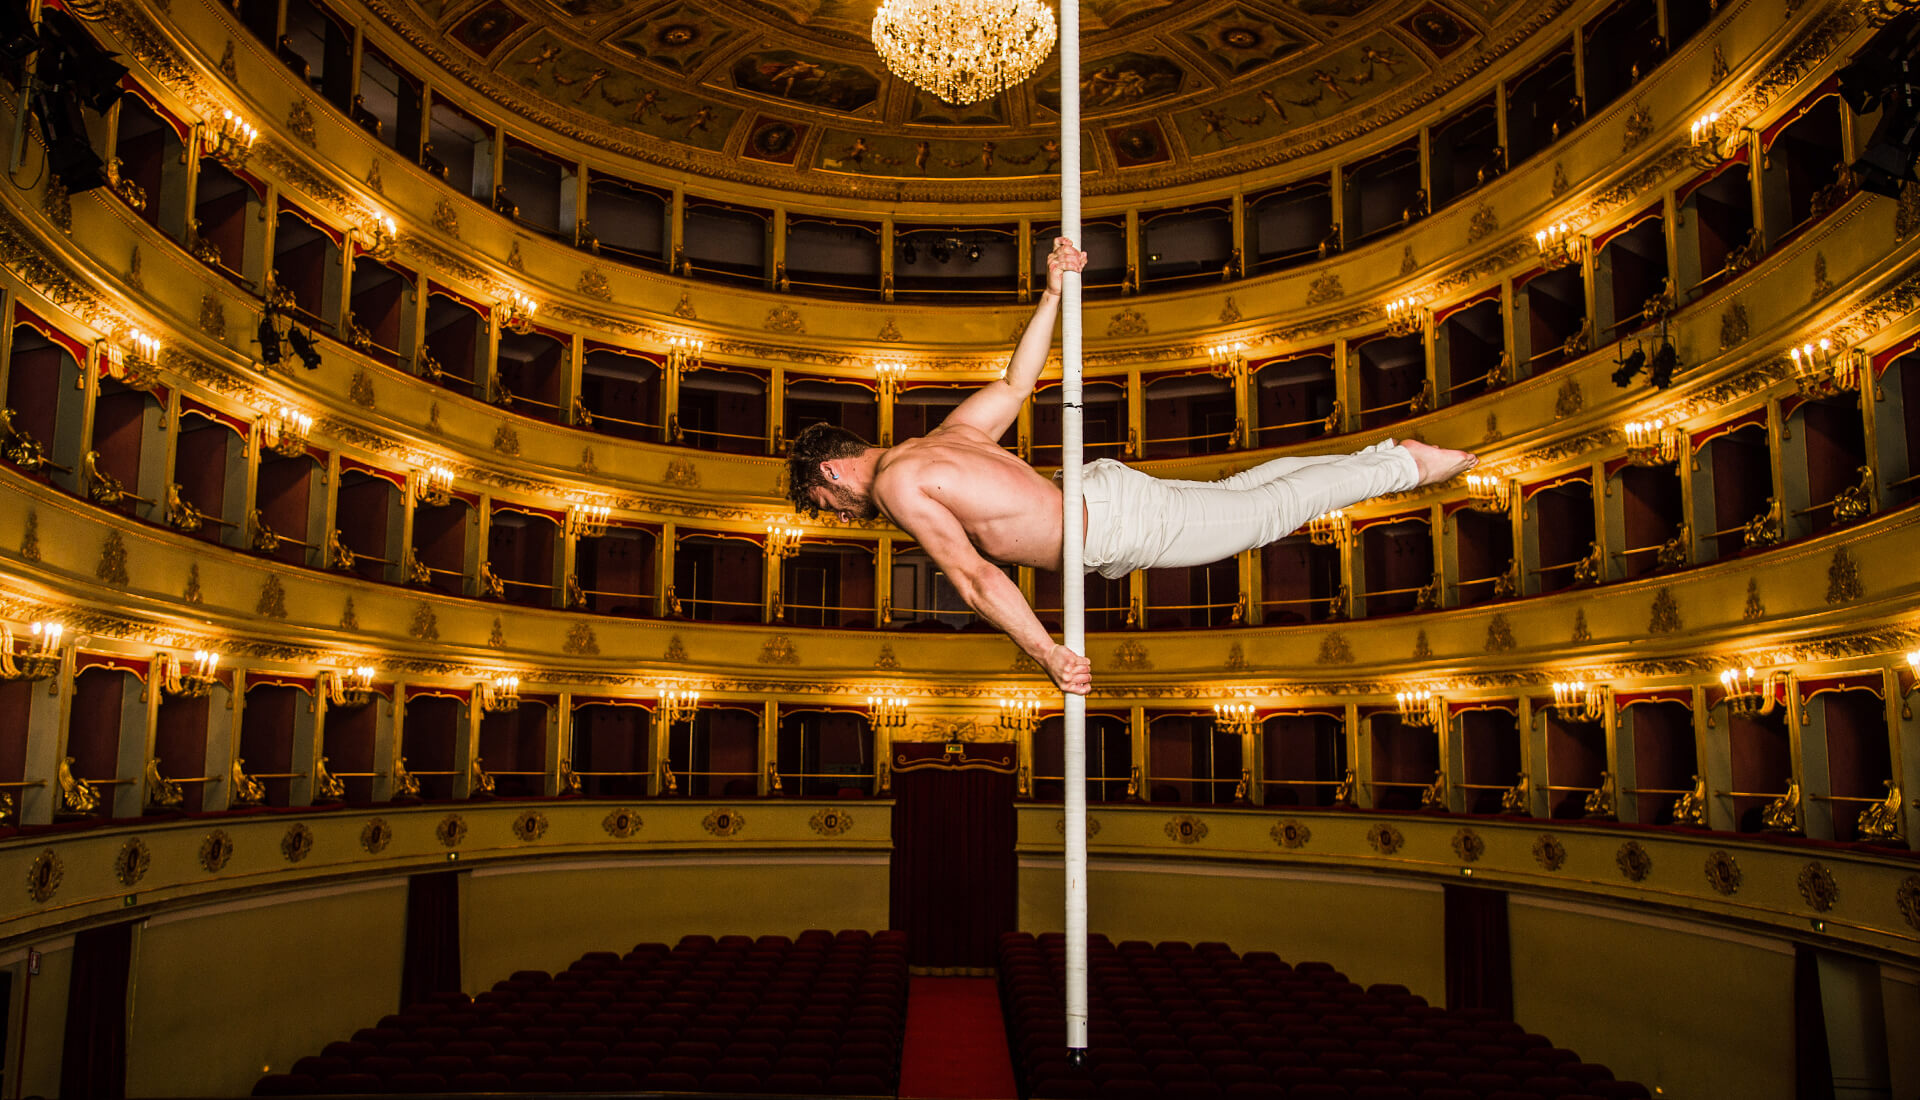 Swinging pole dance